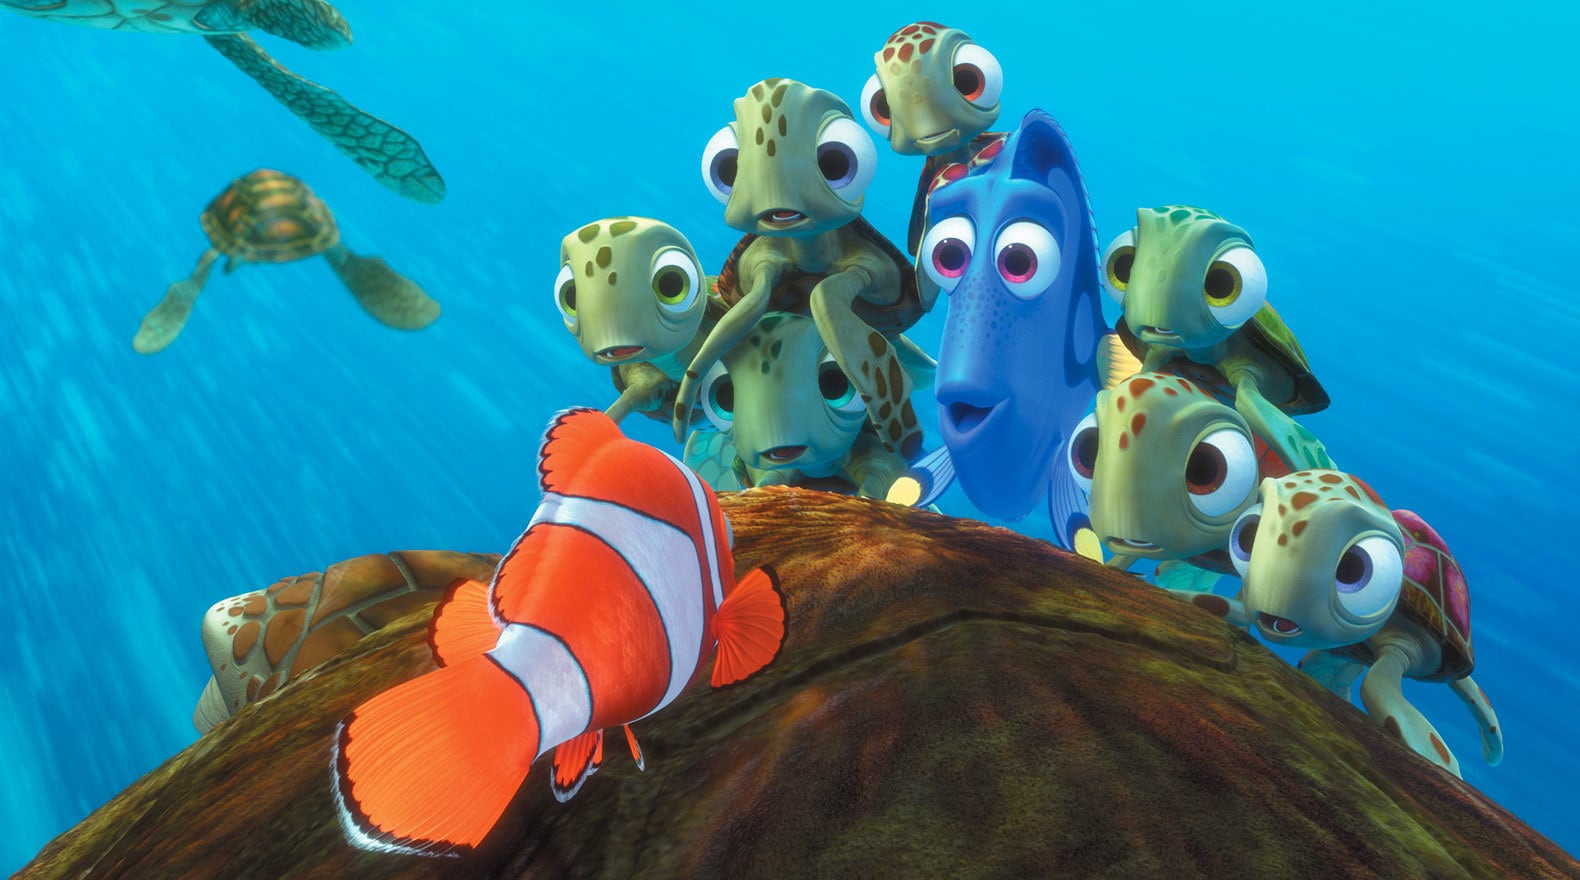 Squirt and his friends can't believe all of Marlin's brave tales of traveling to find Nemo.